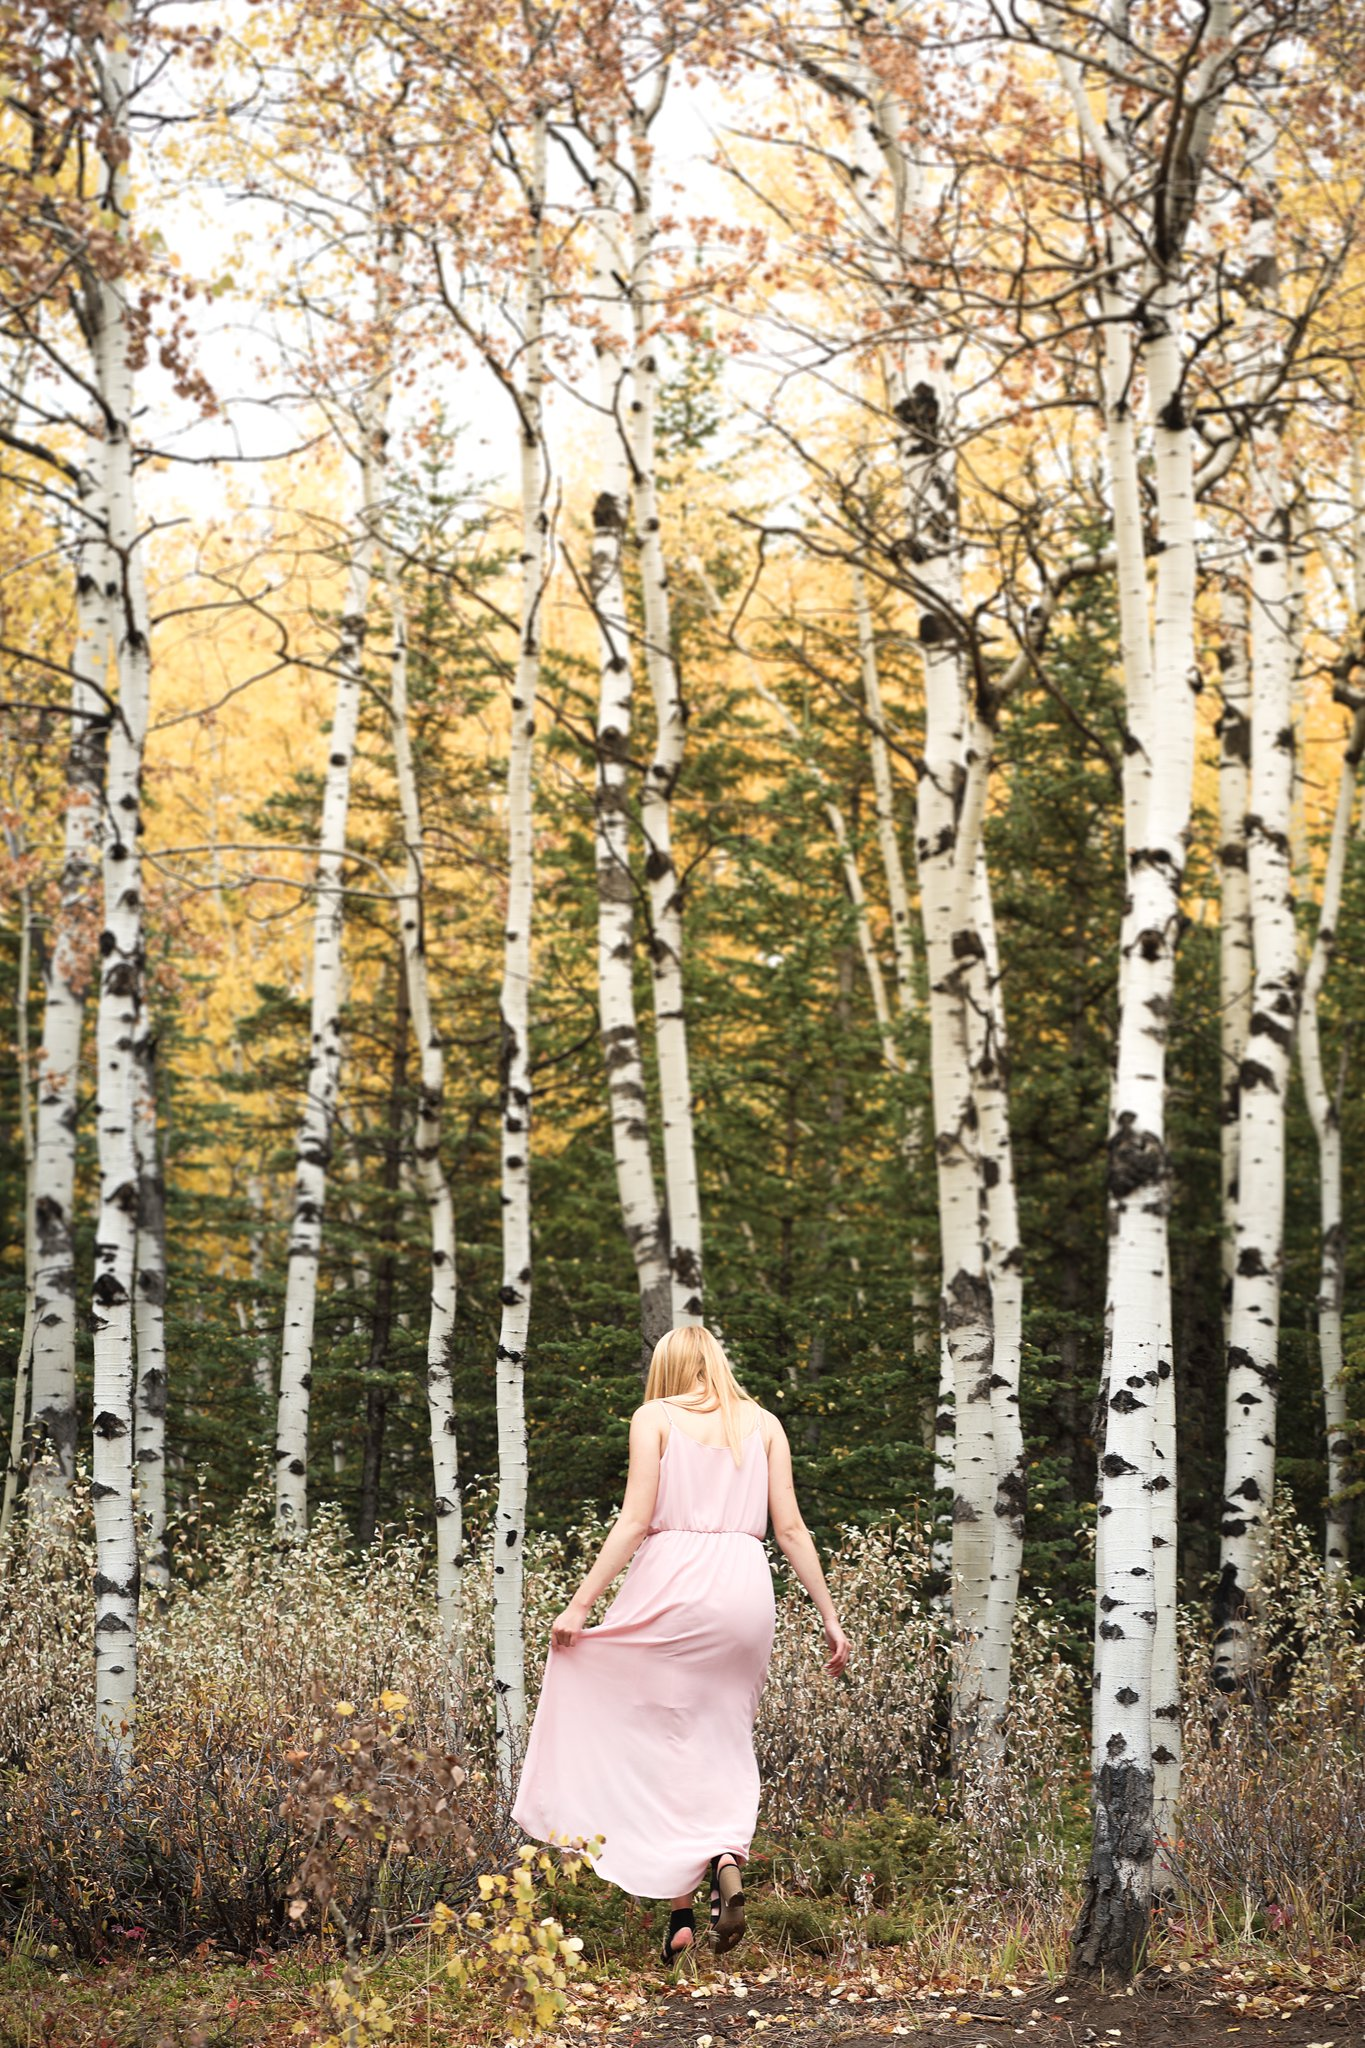 AshleyDaphnePhotography Calgary Photographer Wedding Family Senior Portraits Rocky Mountains Sheep River Falls Autumn Fall_0033.jpg